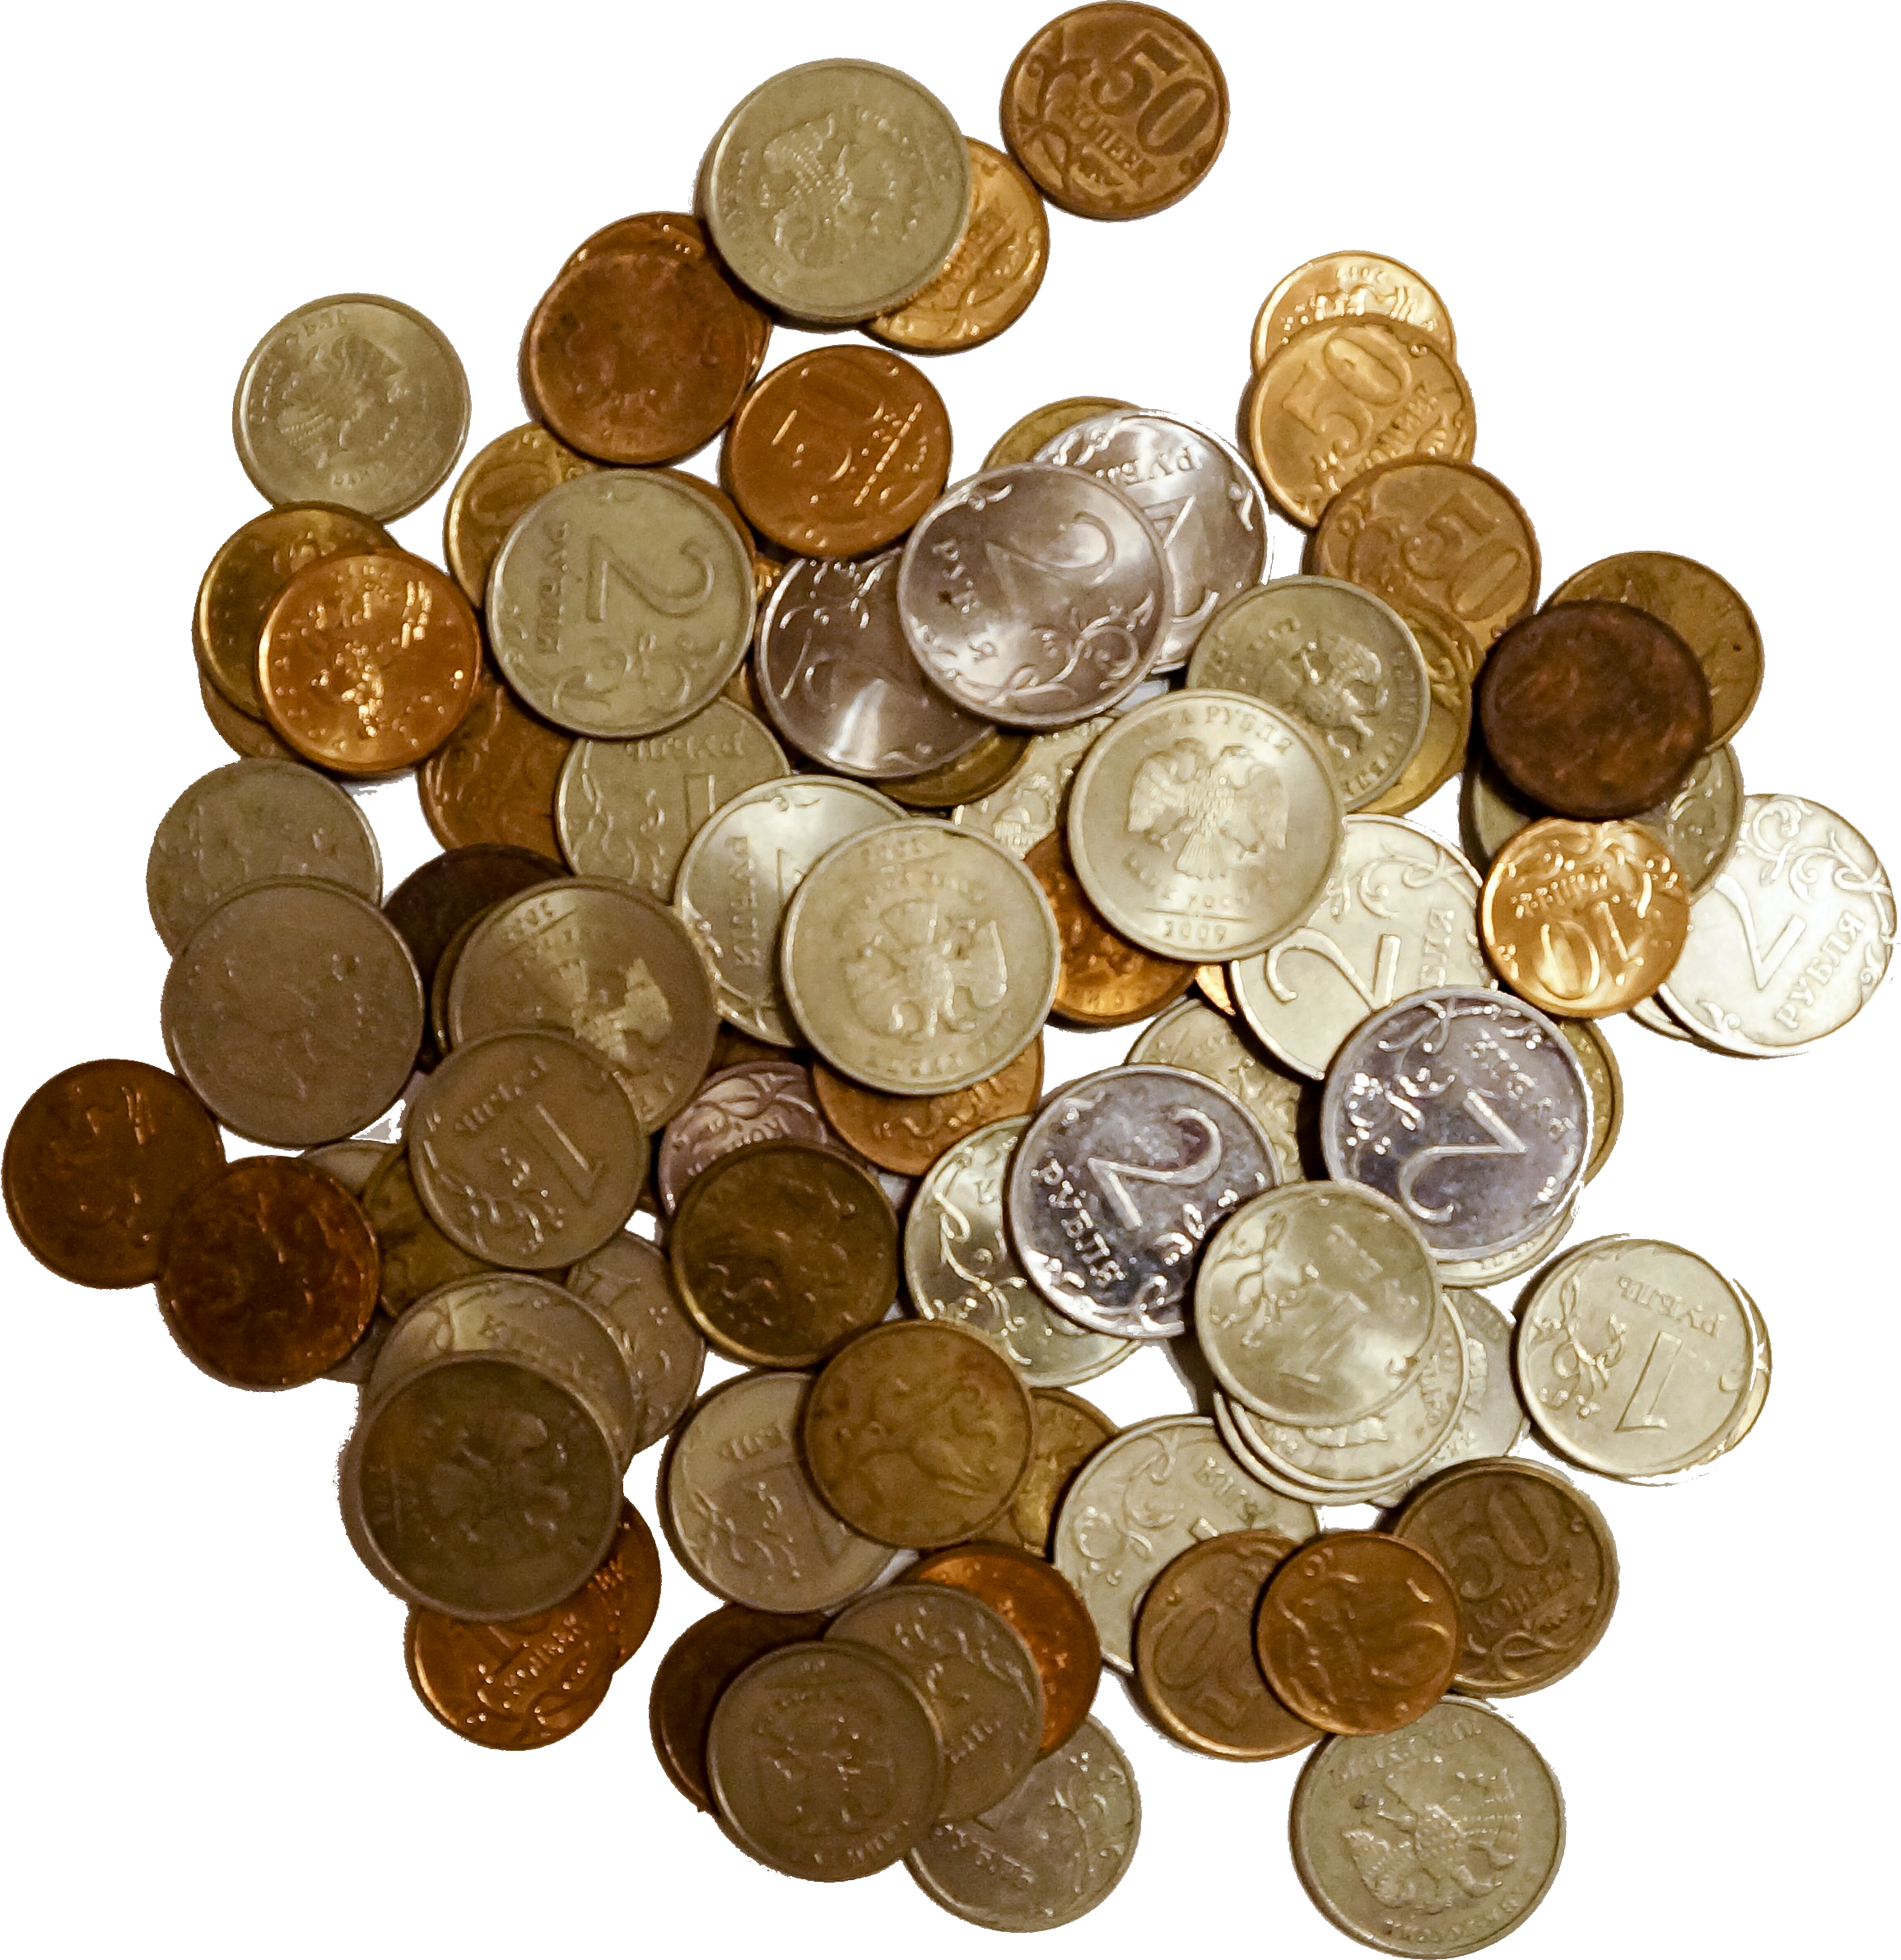 Png coins. Gold image purepng free